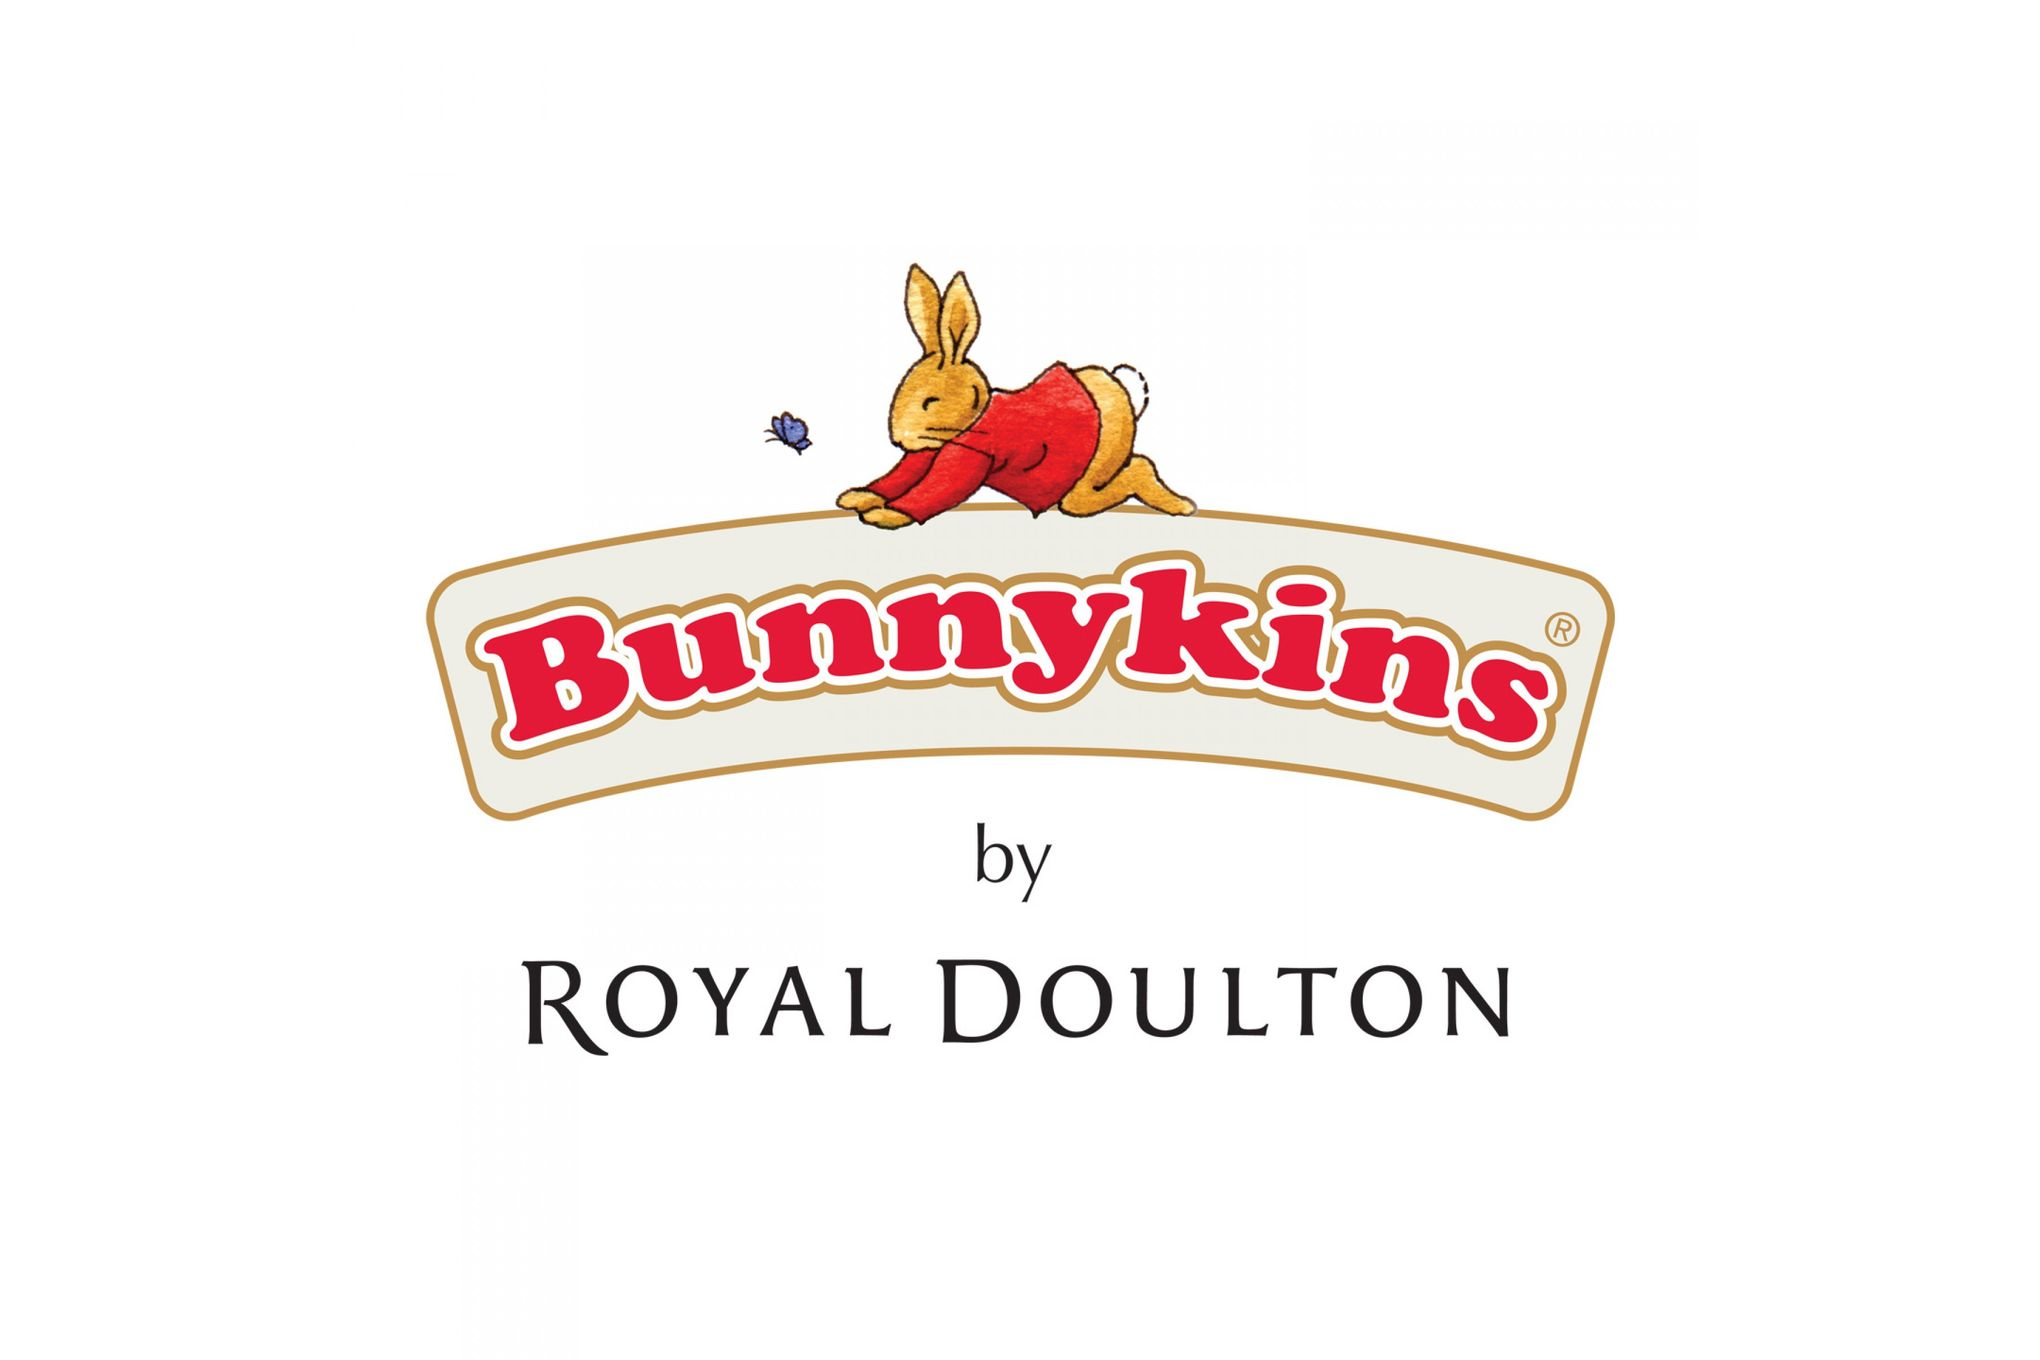 Royal Doulton Bunnykins Money Ball Money Ball thumb 2